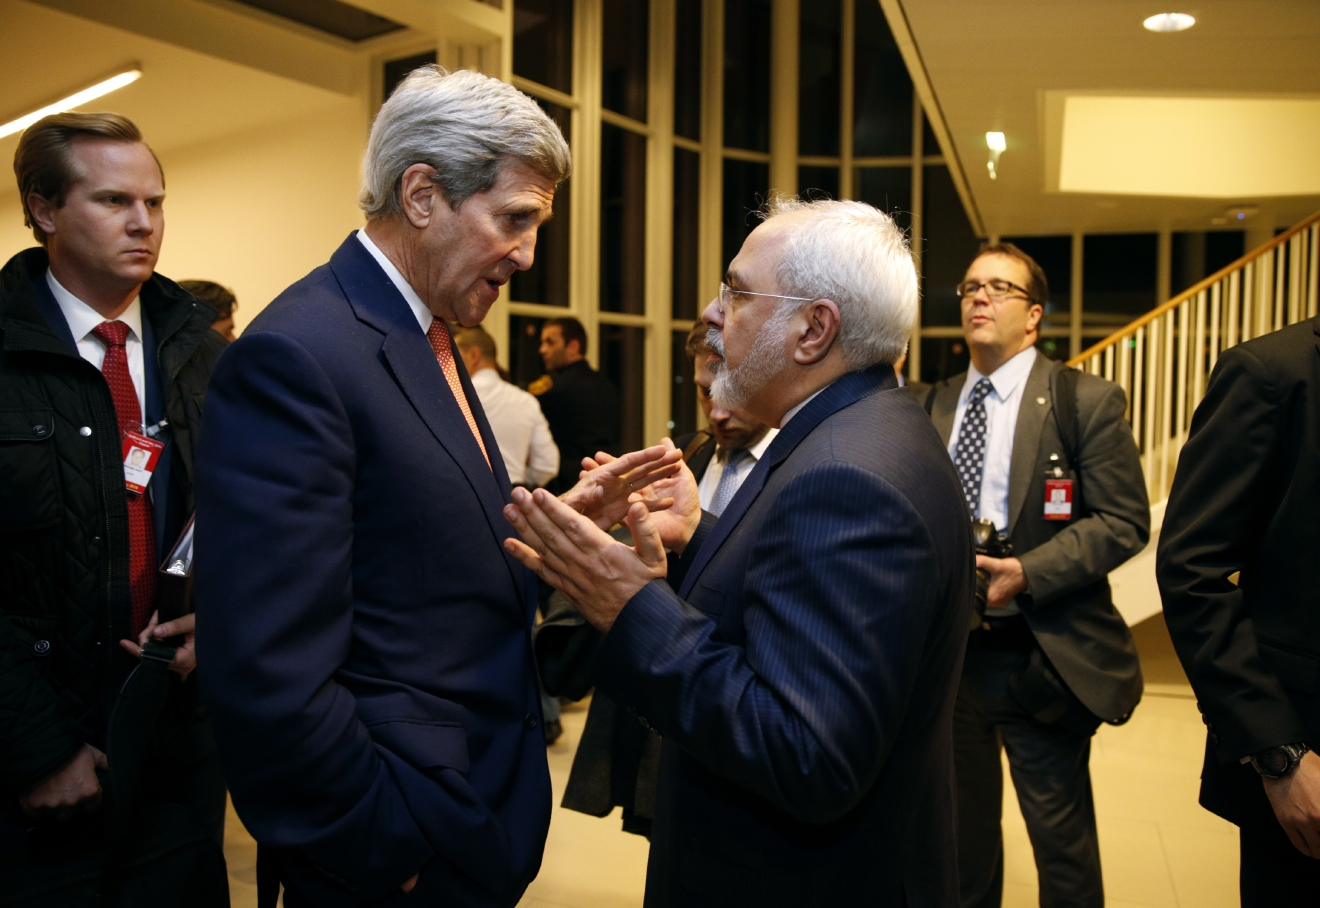 FILE - In this Jan. 16, 2016 file-pool photo, Secretary of State John Kerry talks with Iranian Foreign Minister Mohammad Javad Zarif in Vienna, after the International Atomic Energy Agency (IAEA) verified that Iran has met all conditions under the nuclear deal. (Kevin Lamarque/Pool via AP, File)<p></p>